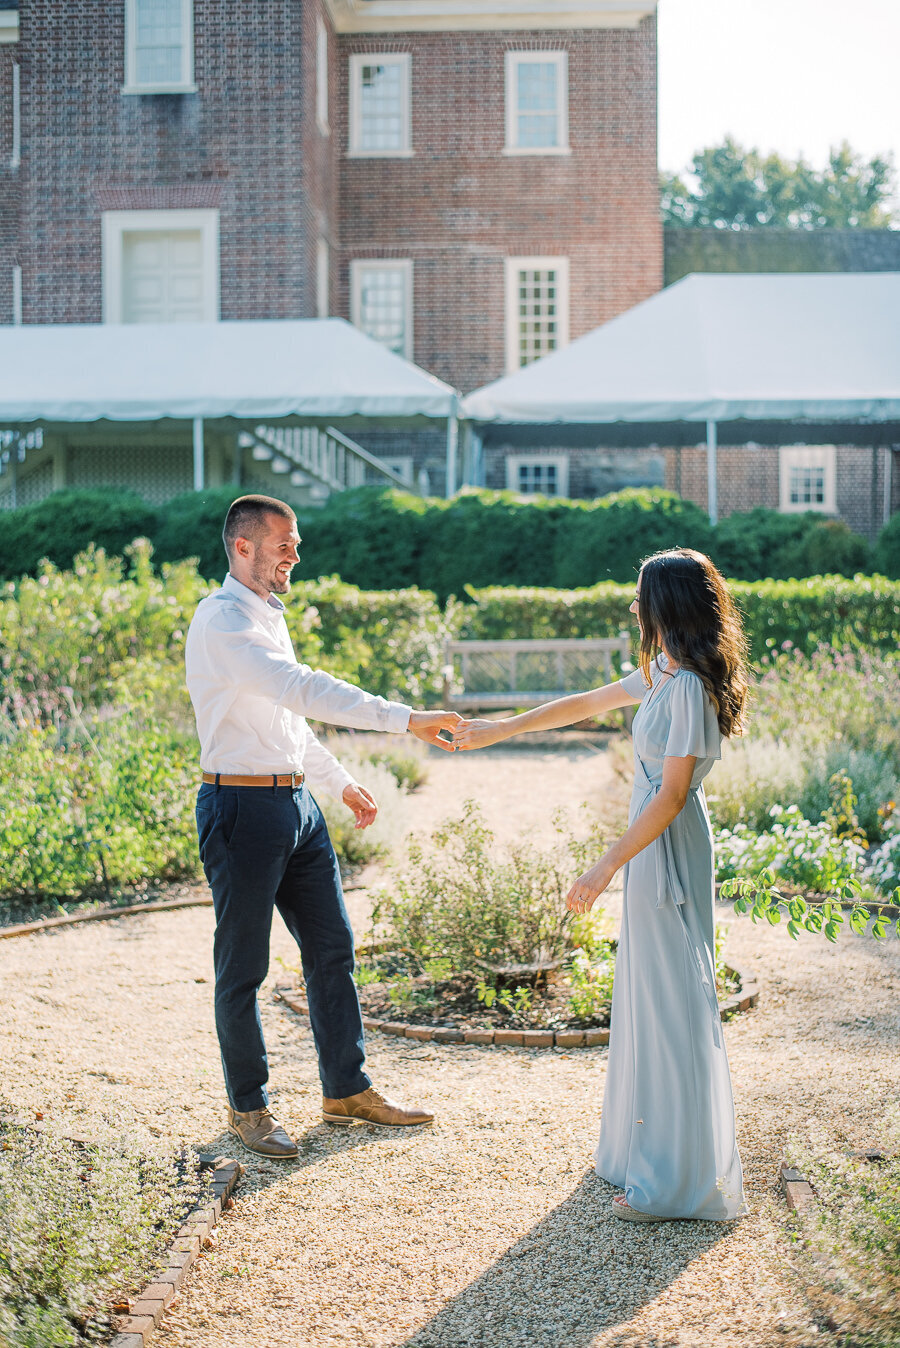 William_Paca_Gardens_Engagement_Session_Megan_Harris_Photography